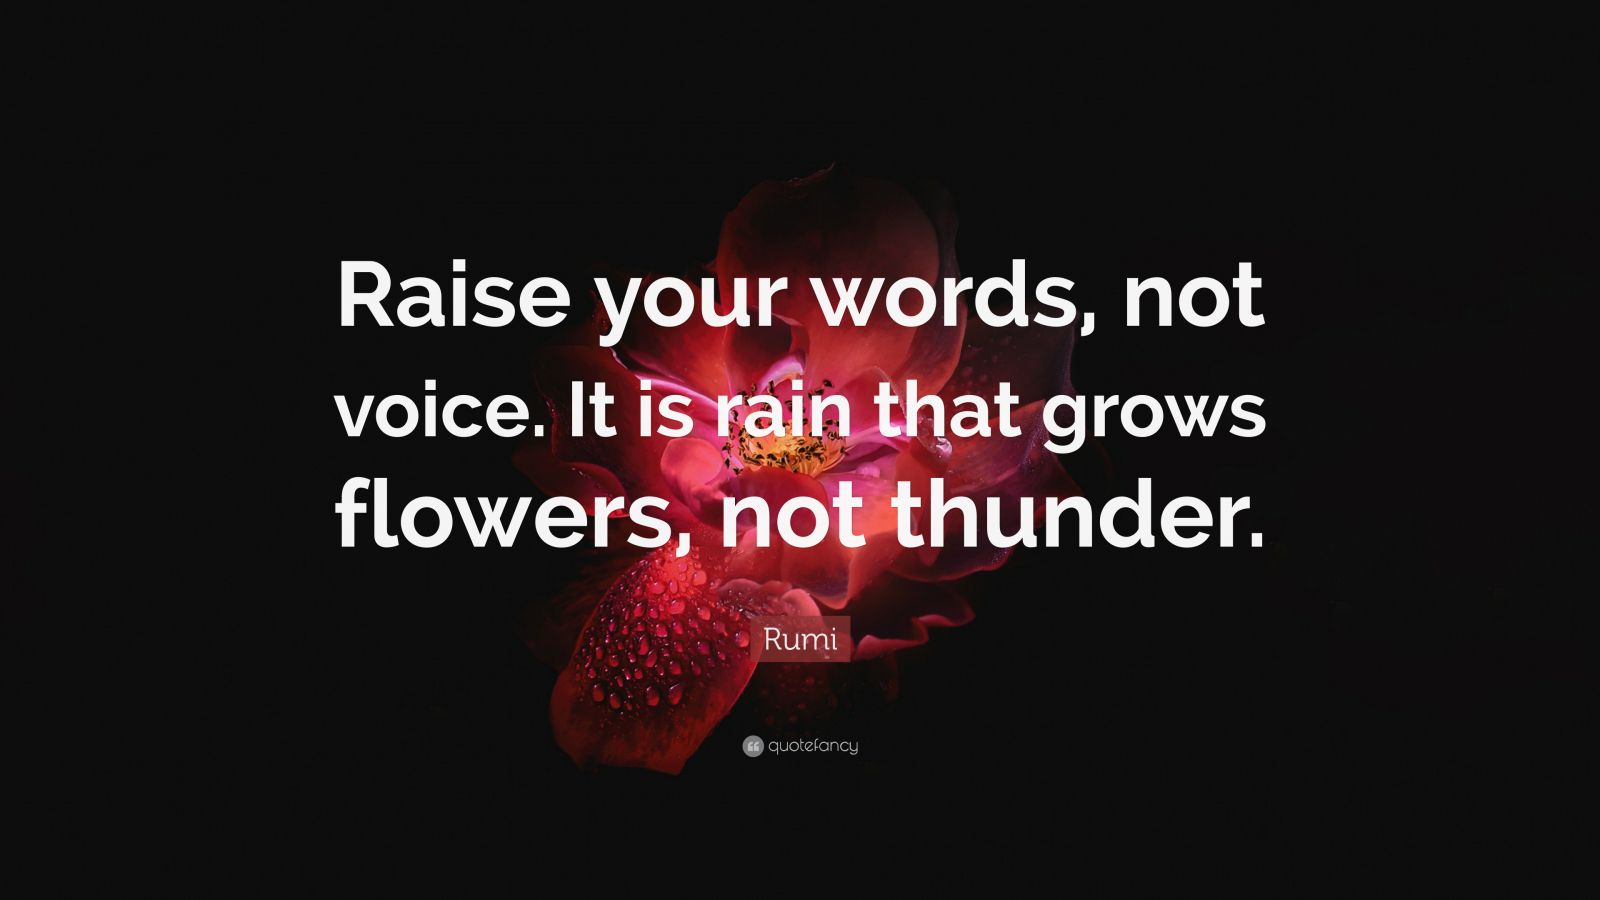 Theodore Roosevelt Quotes Wallpaper Rumi Quote Raise Your Words Not Voice It Is Rain That